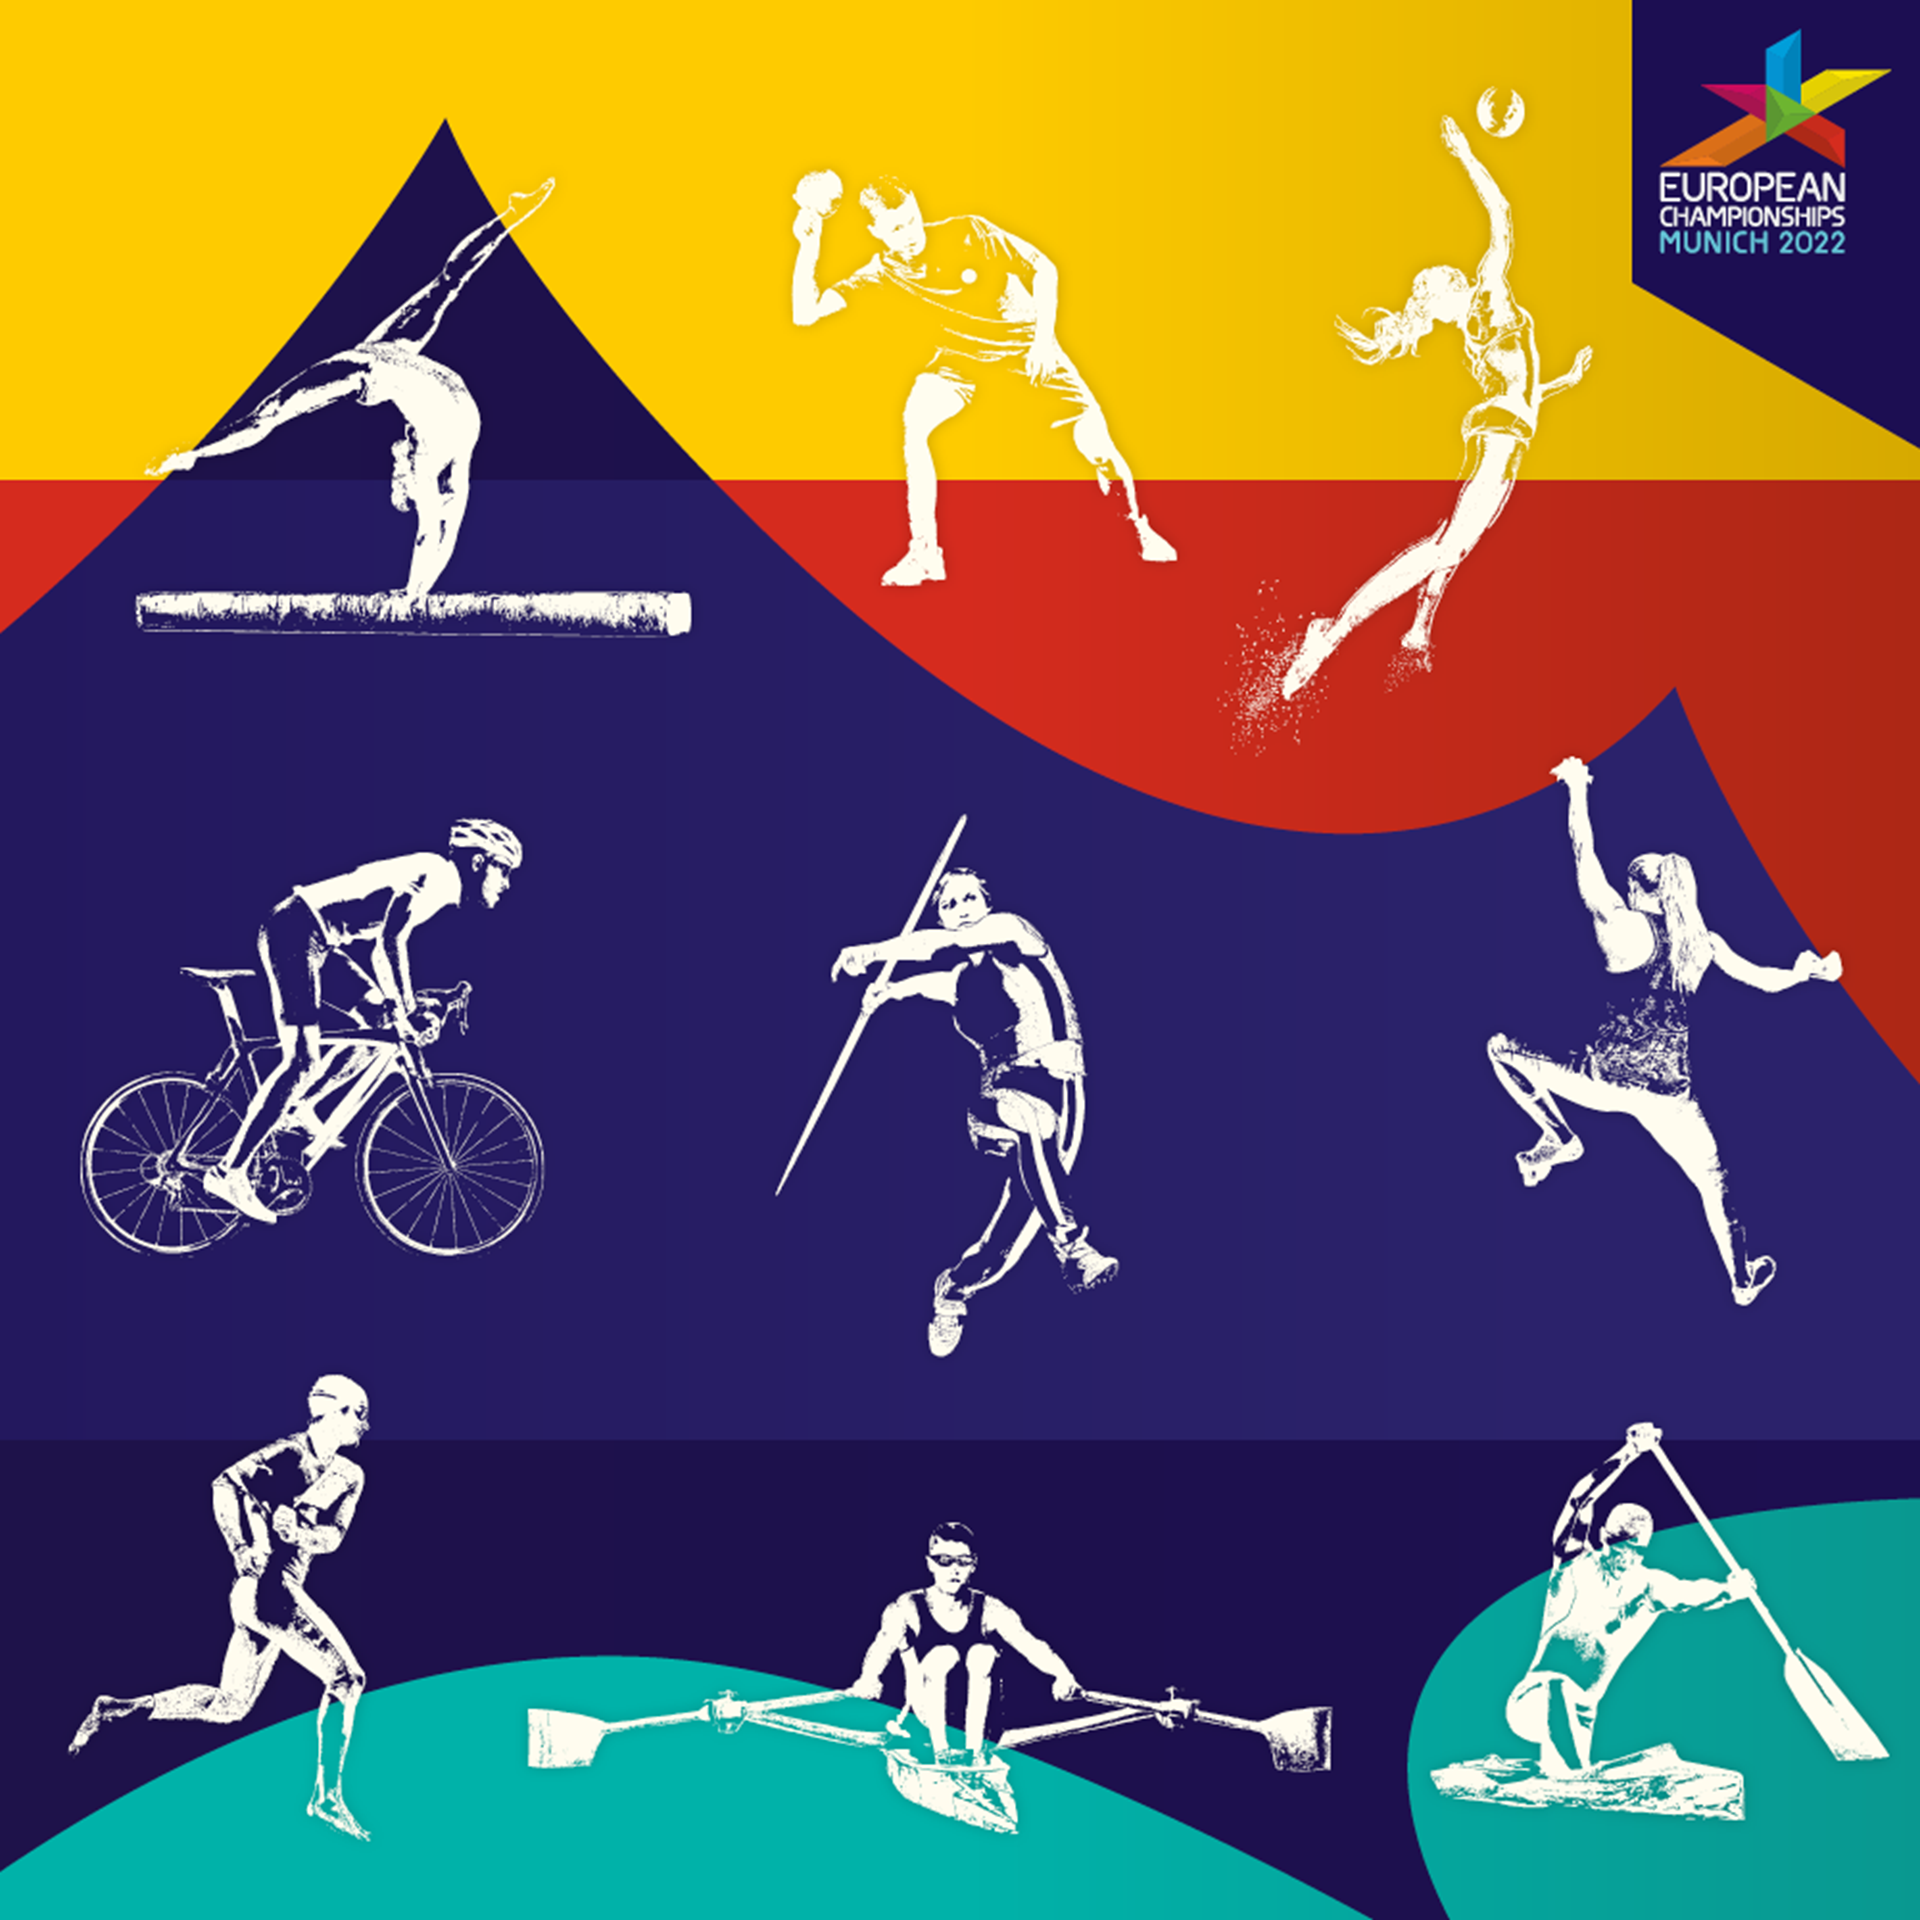 Sports programme released for Munich 2022 European Championships